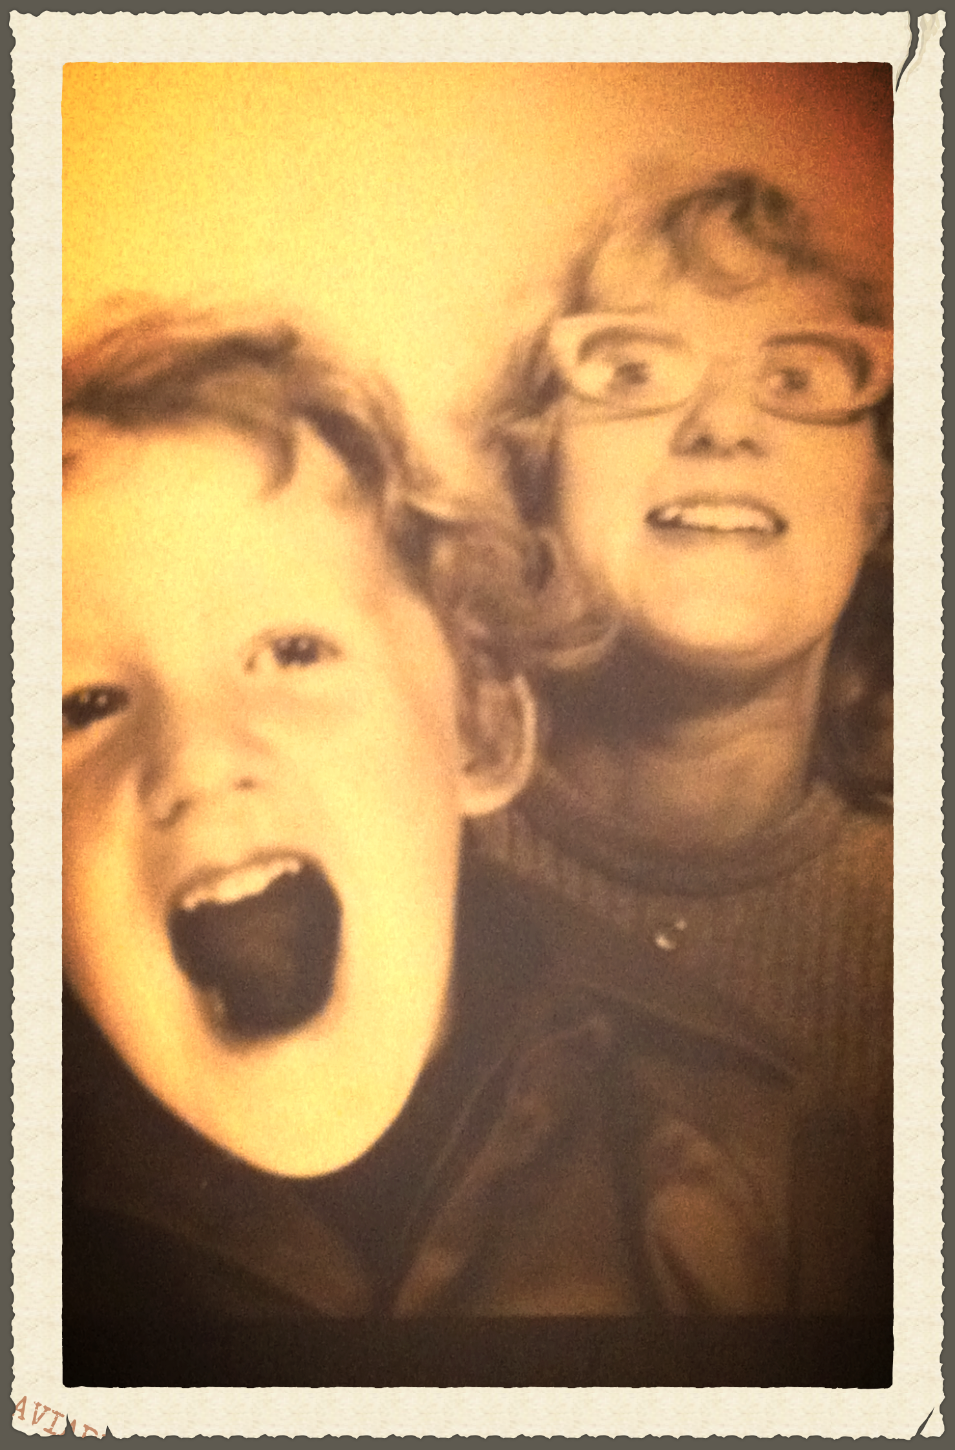 Me and mum.  A LONG time ago.